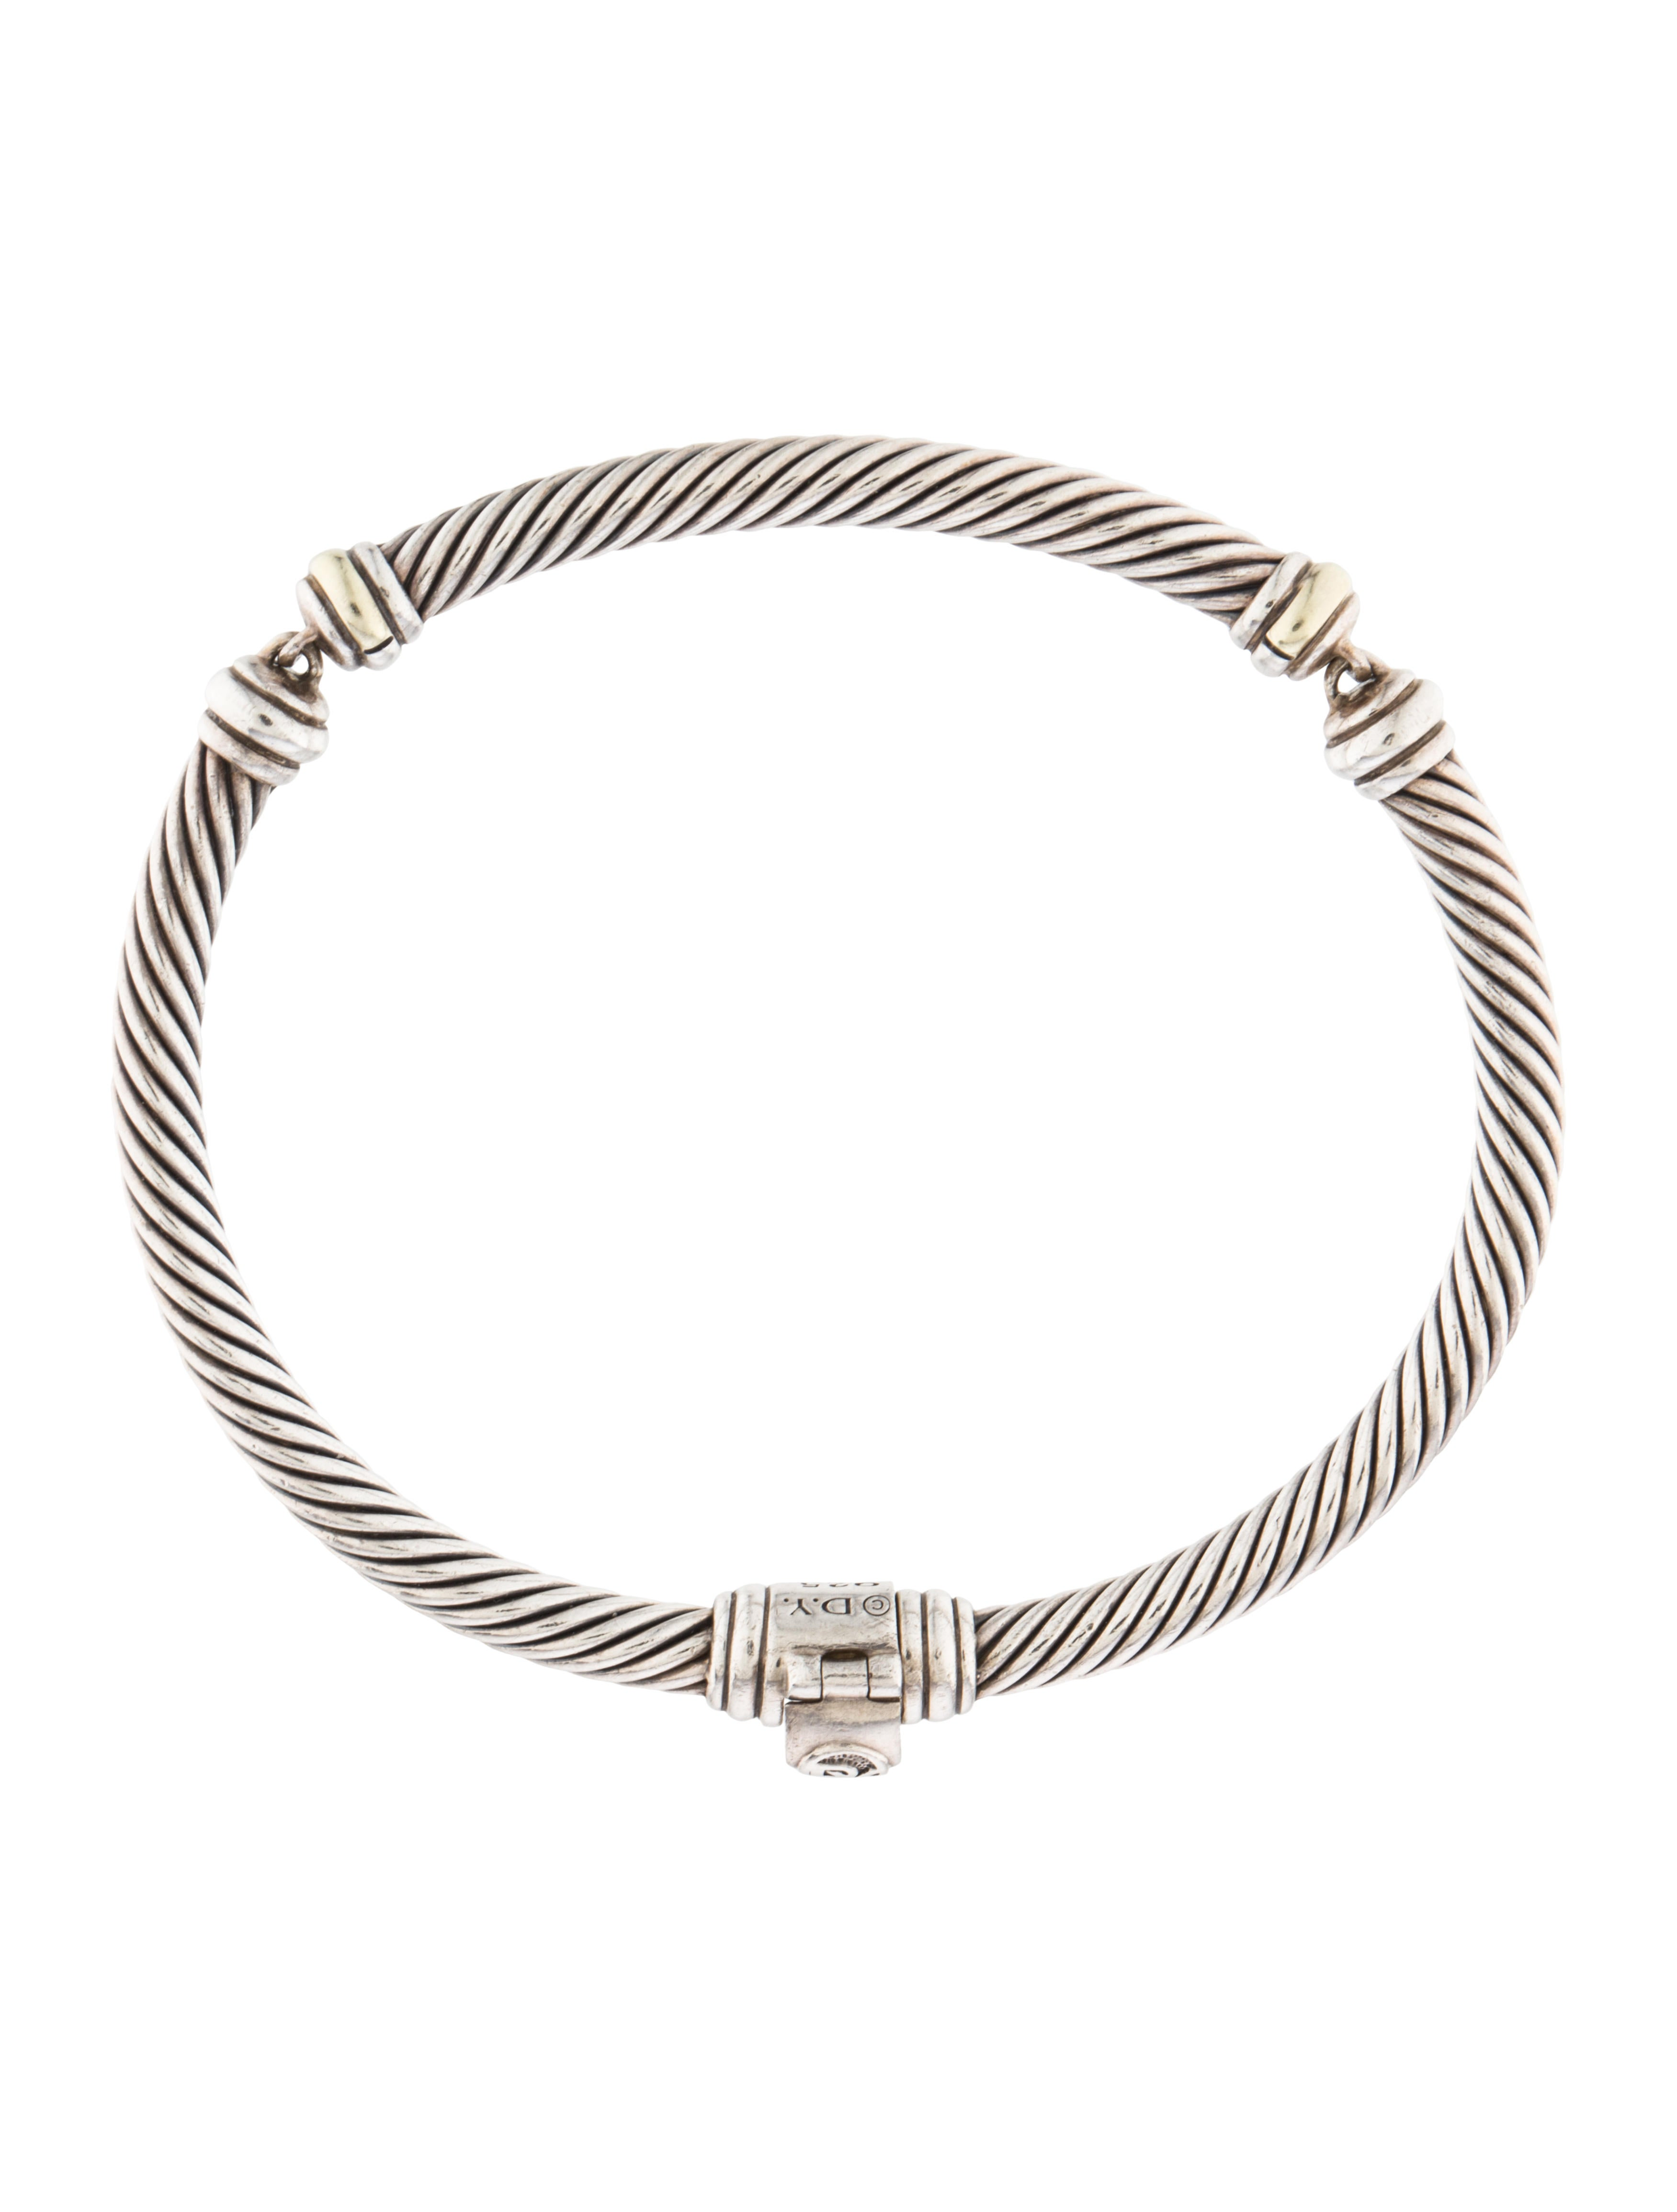 David yurman metro cable bracelet bracelets dvy38593 for David yurman inspired bracelet cable